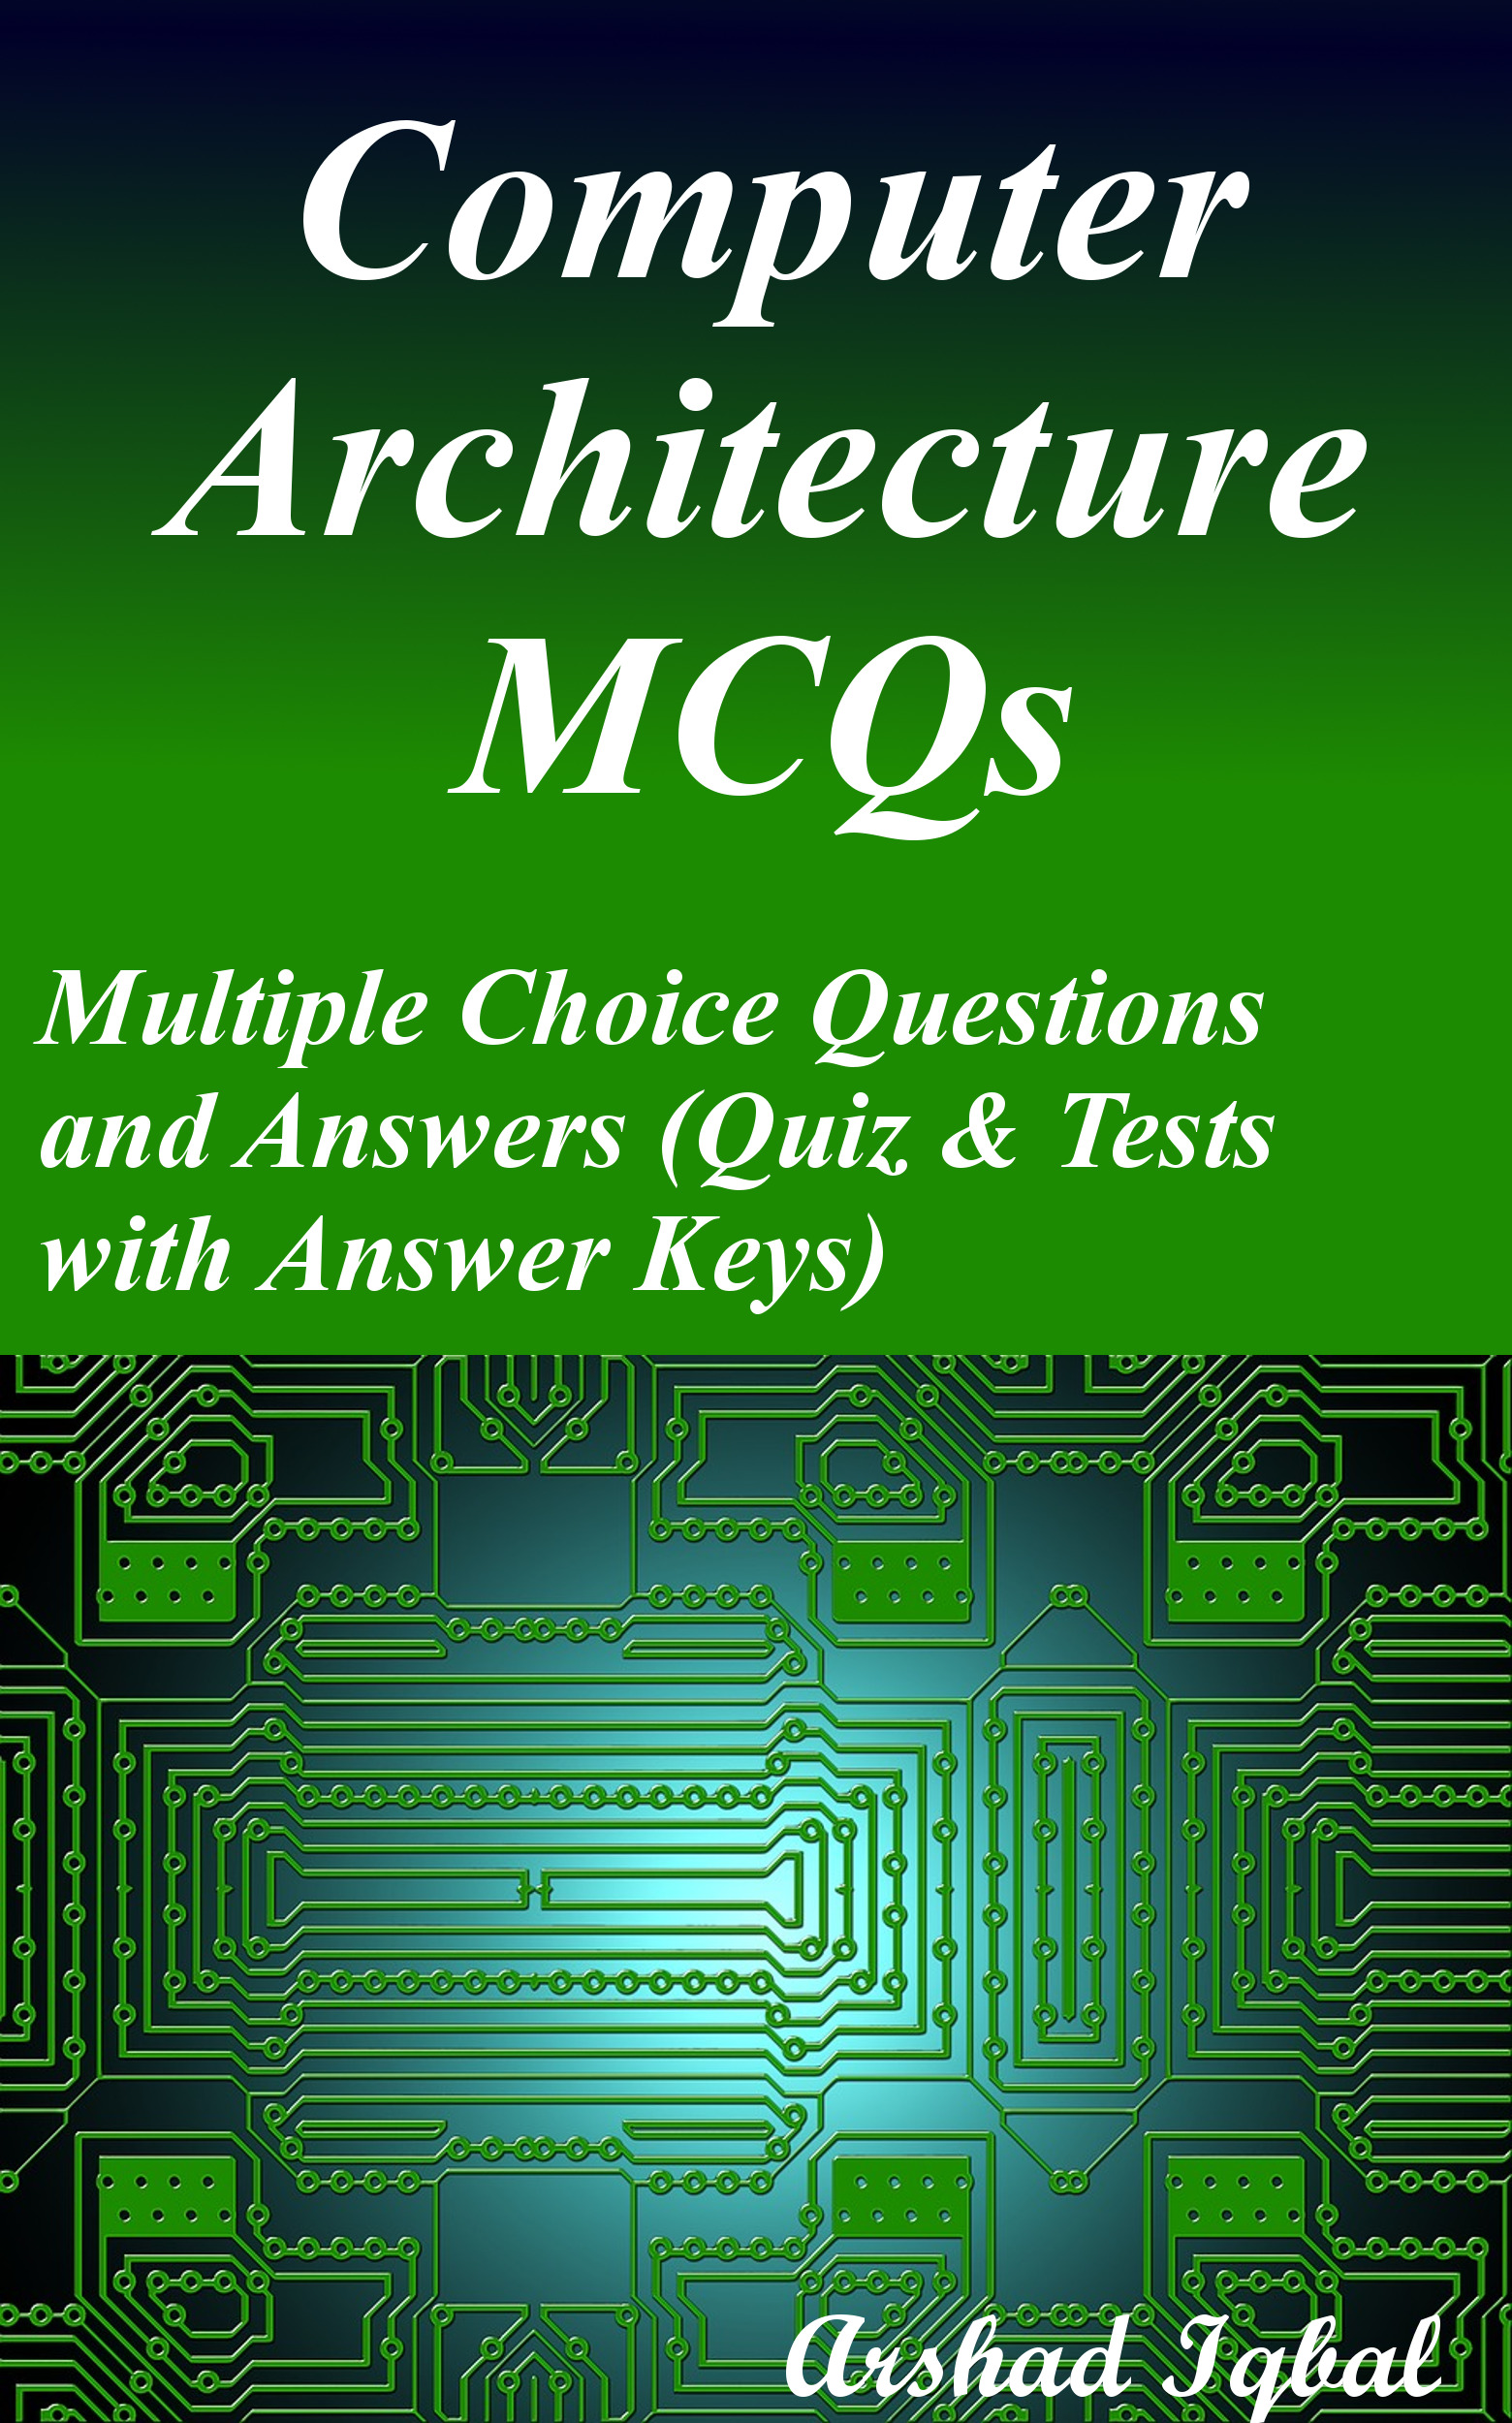 Computer Architecture Multiple Choice Questions and Answers (MCQs): Quizzes & Practice Tests with Answer Key